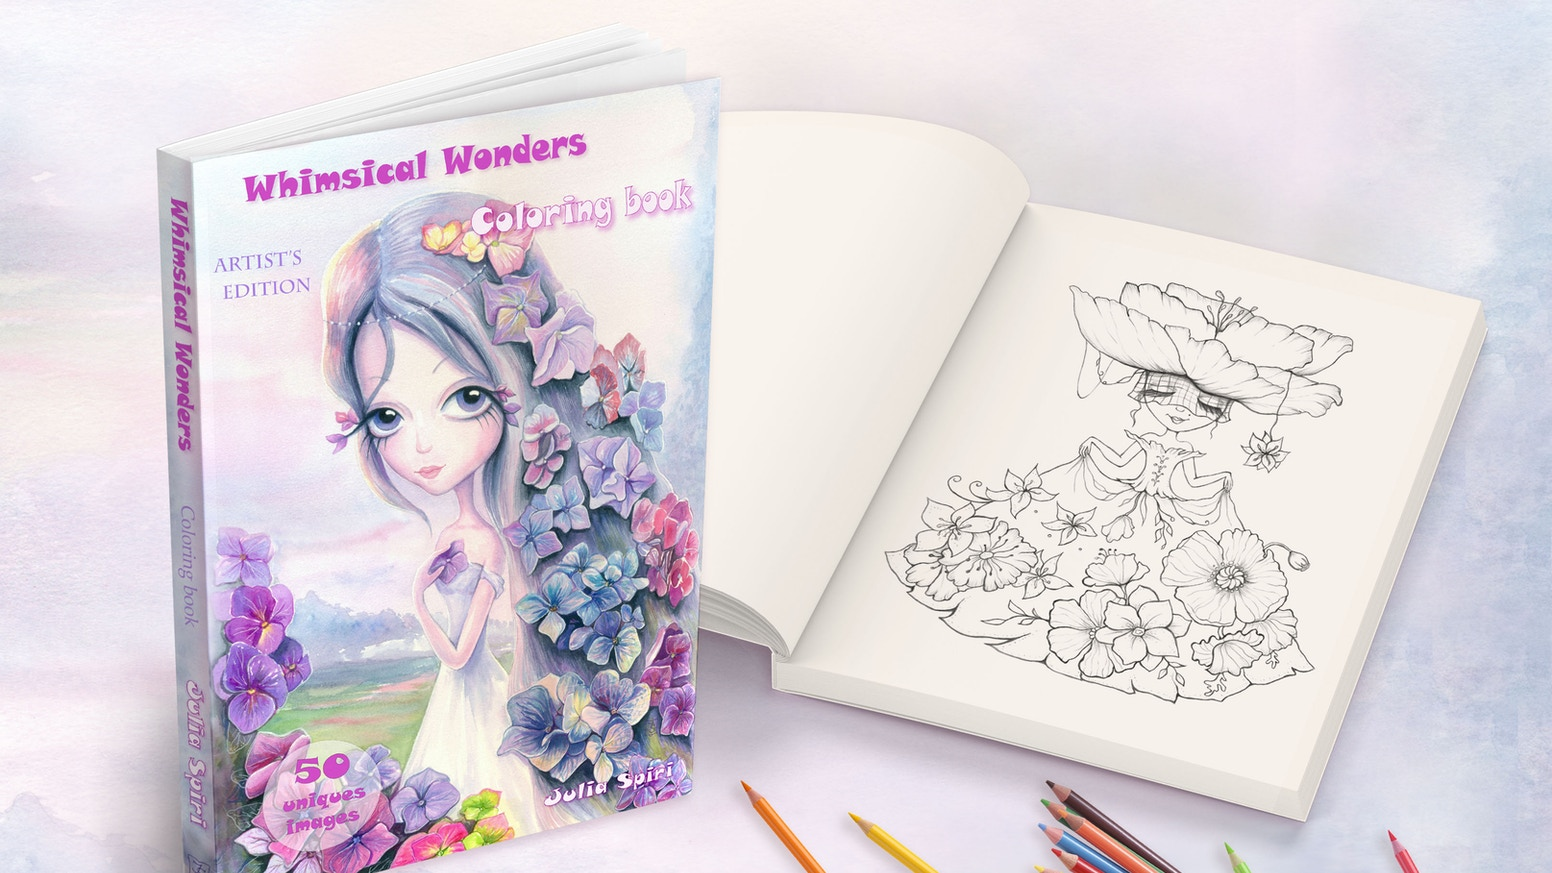 Whimsical Wonders Coloring Book For Adults By Julia Spiri By Julia